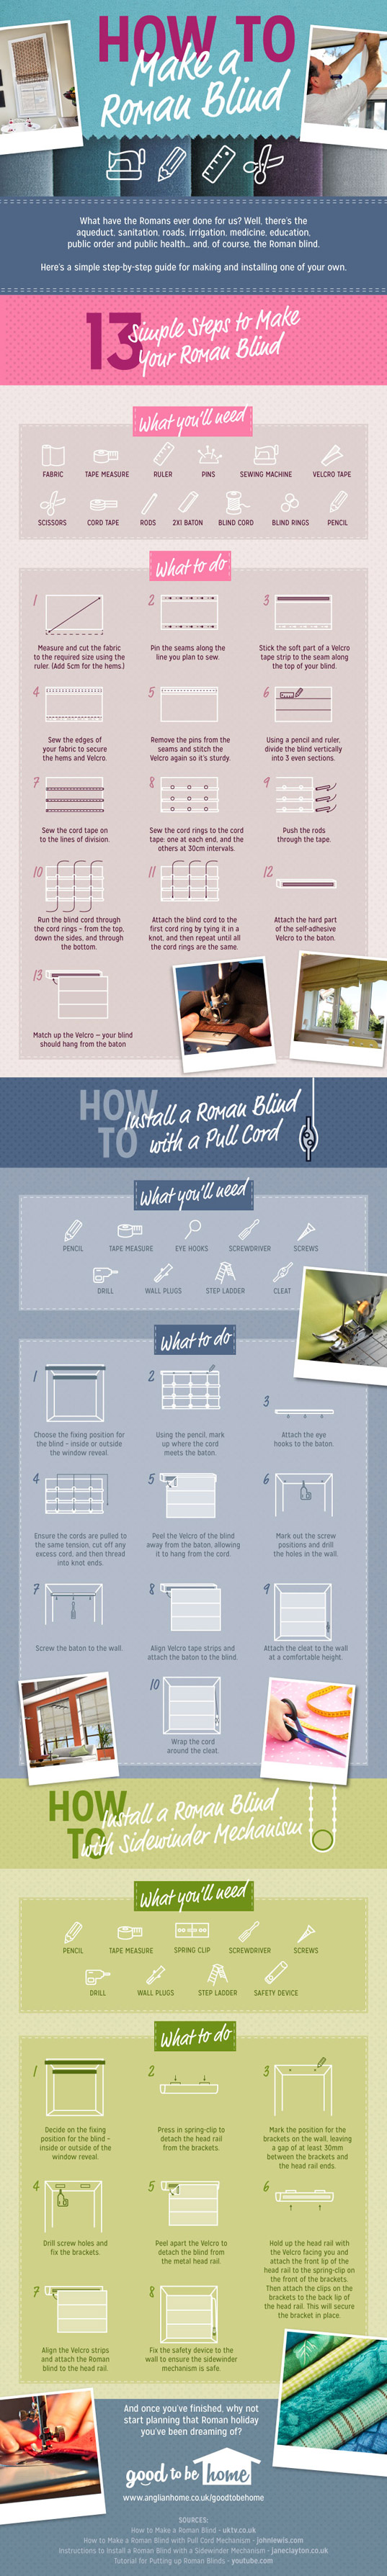 roman blind, roman blinds, diy, do it yourself, diy blinds, green design, sustainable design, window treatments, diy blinds, diy window shade, window shades, window blinds, anglian home